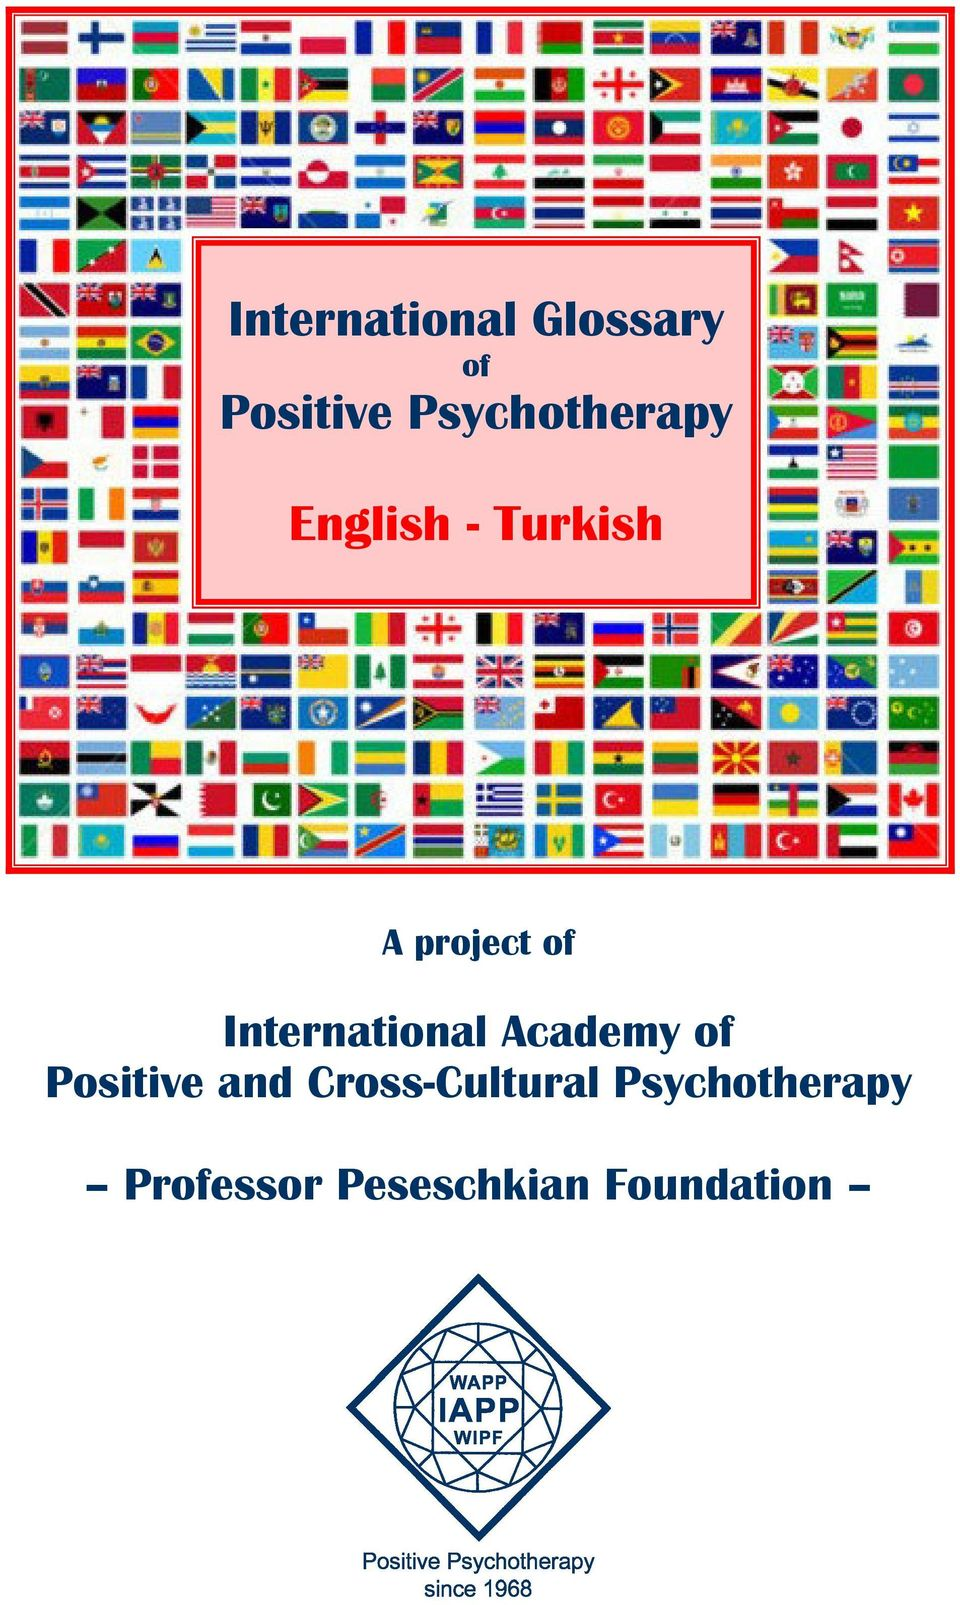 International Academy of Positive and